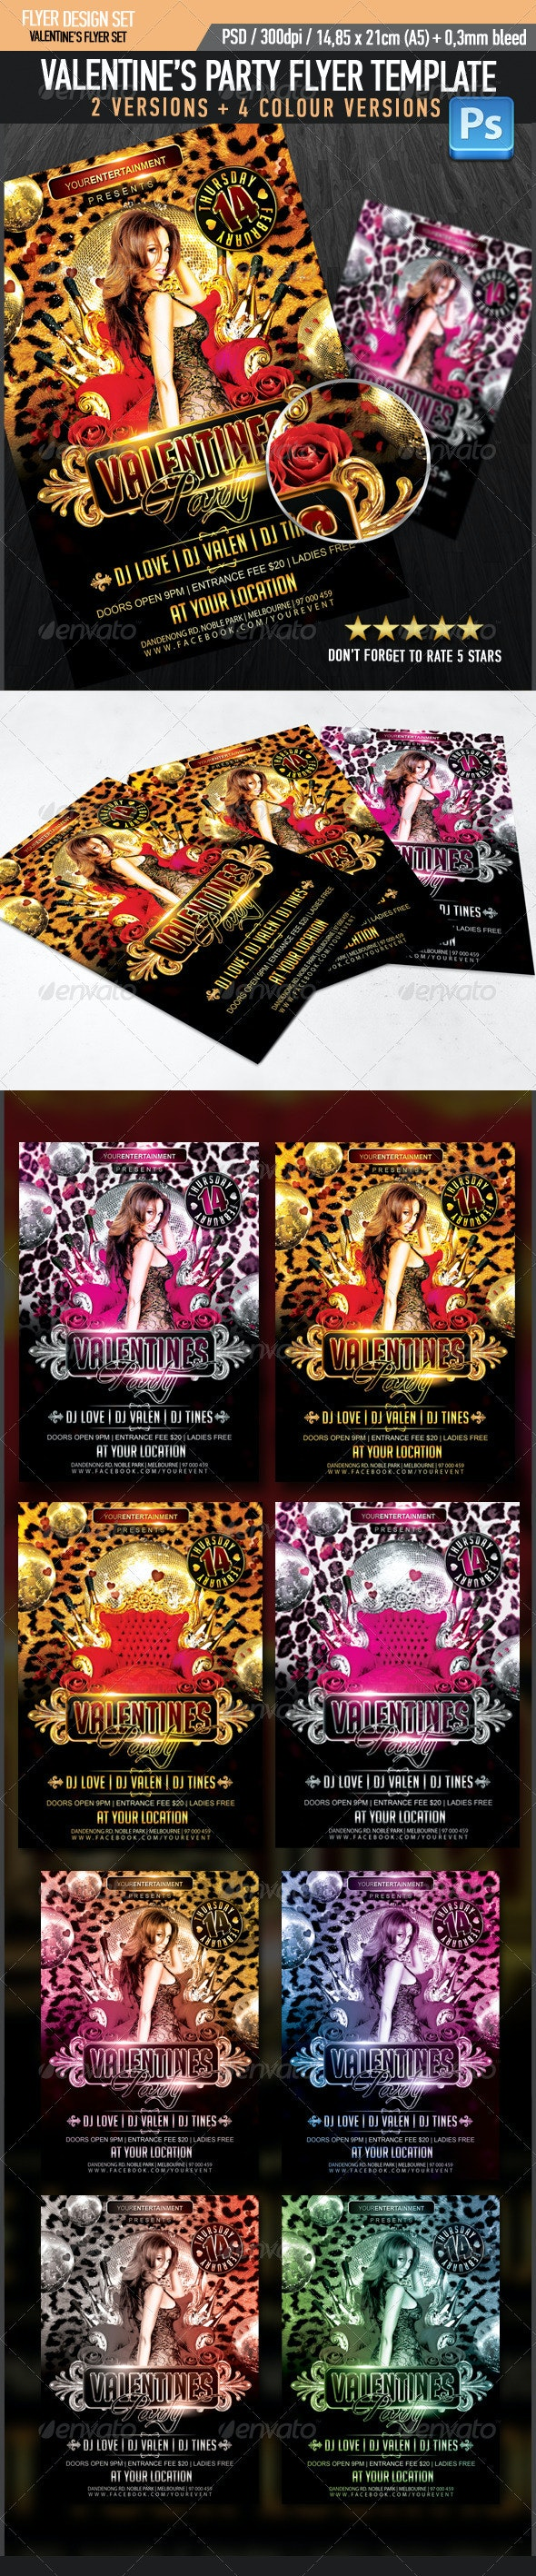 Valentine's Party Flyer Template - Clubs & Parties Events